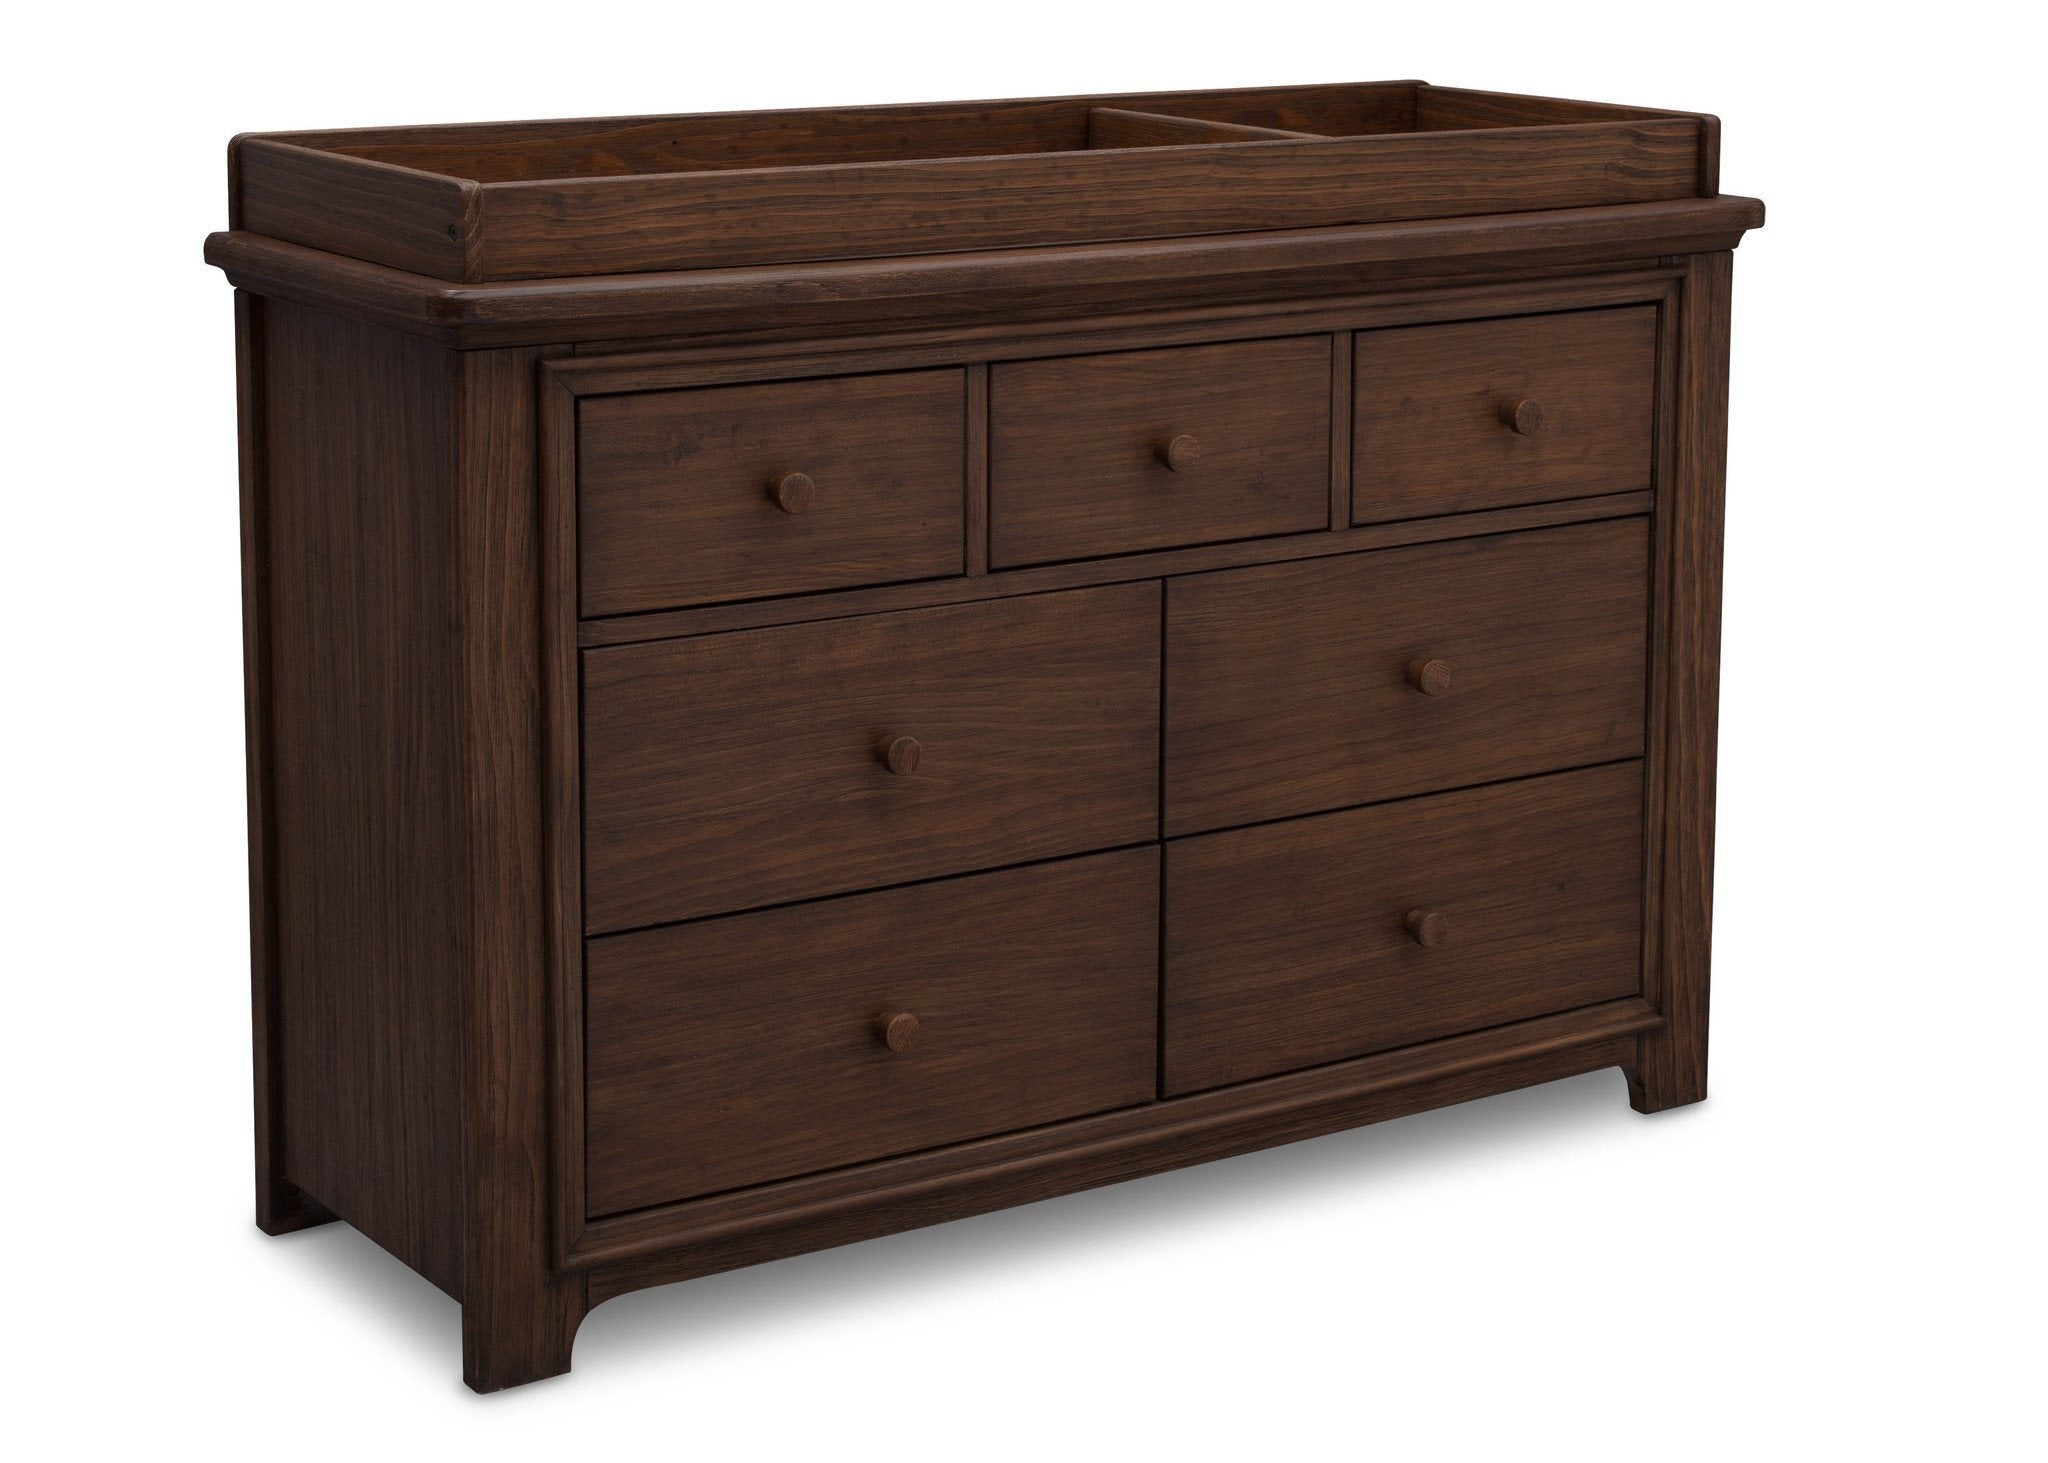 Serta Rustic Oak (229) Langley 7 Drawer Dresser, Right View with Top c4c